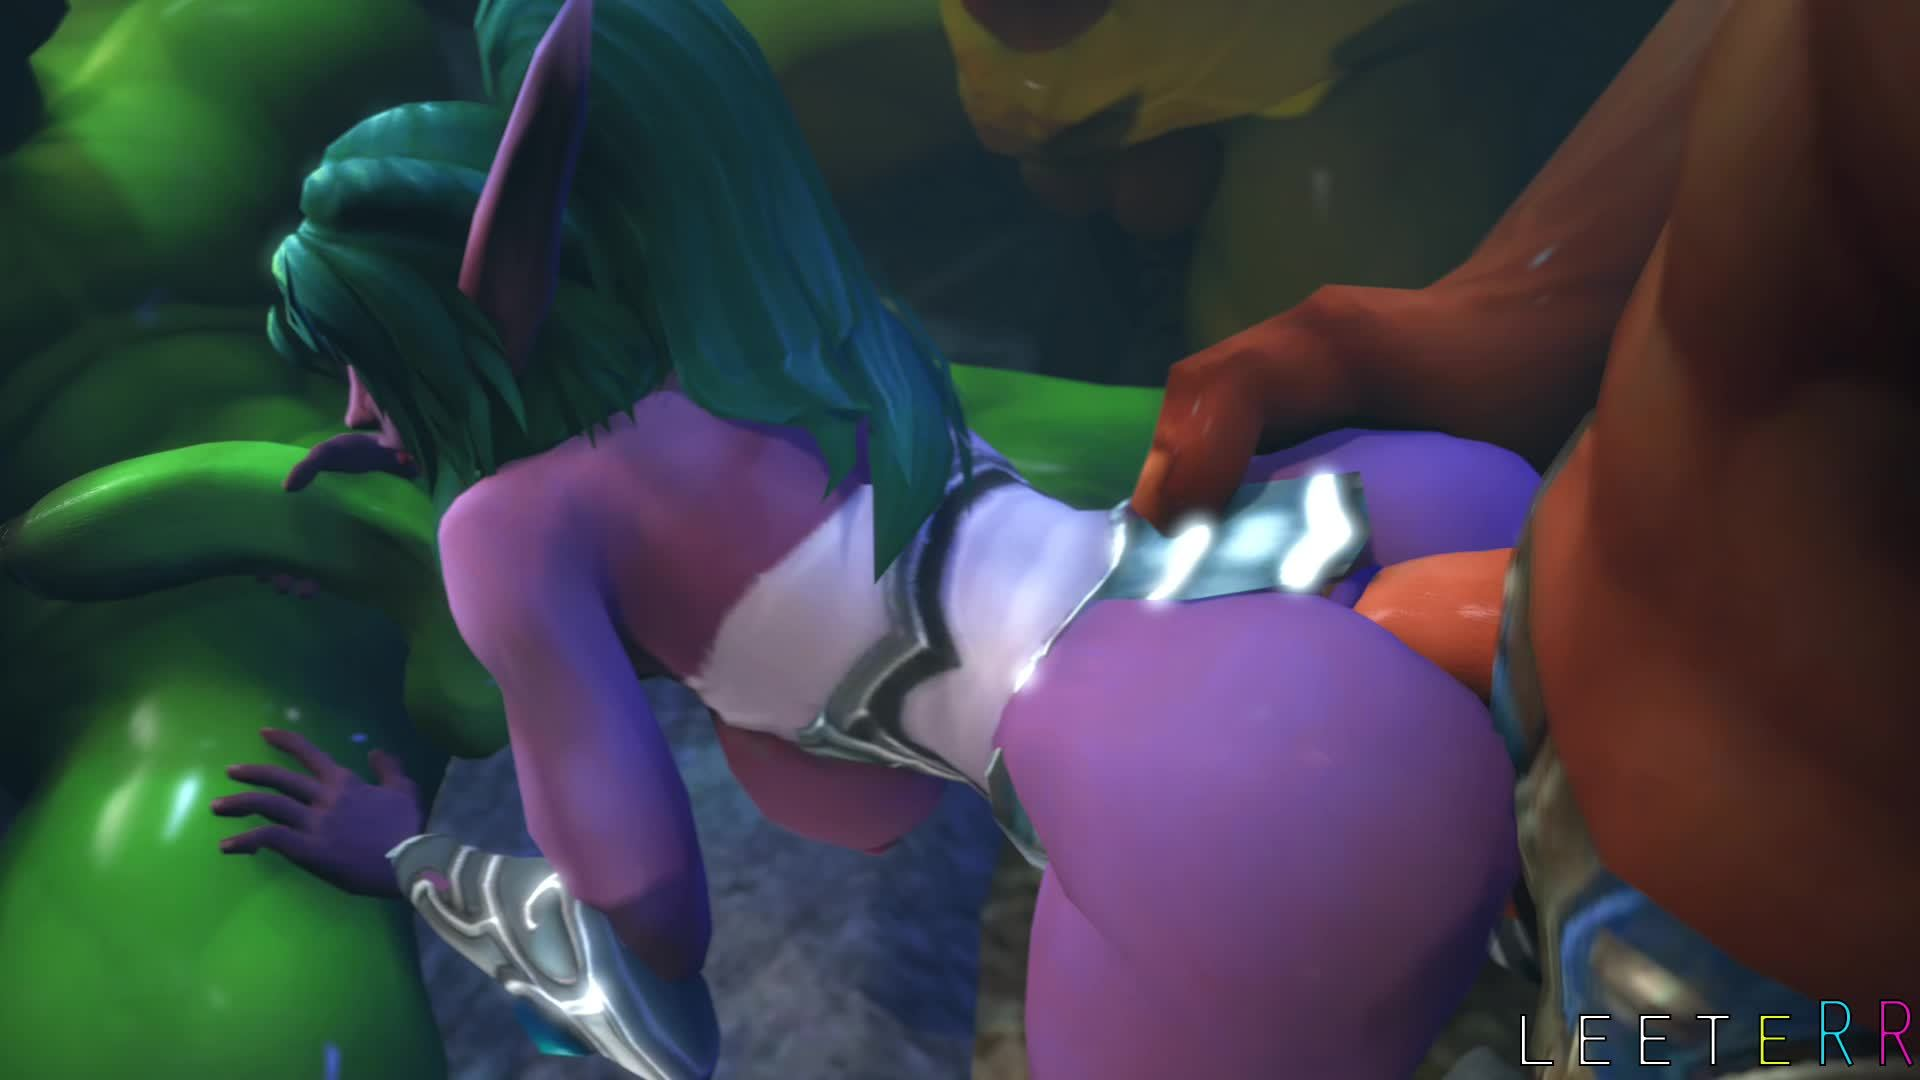 Warcraft porn butt fuck sex photo